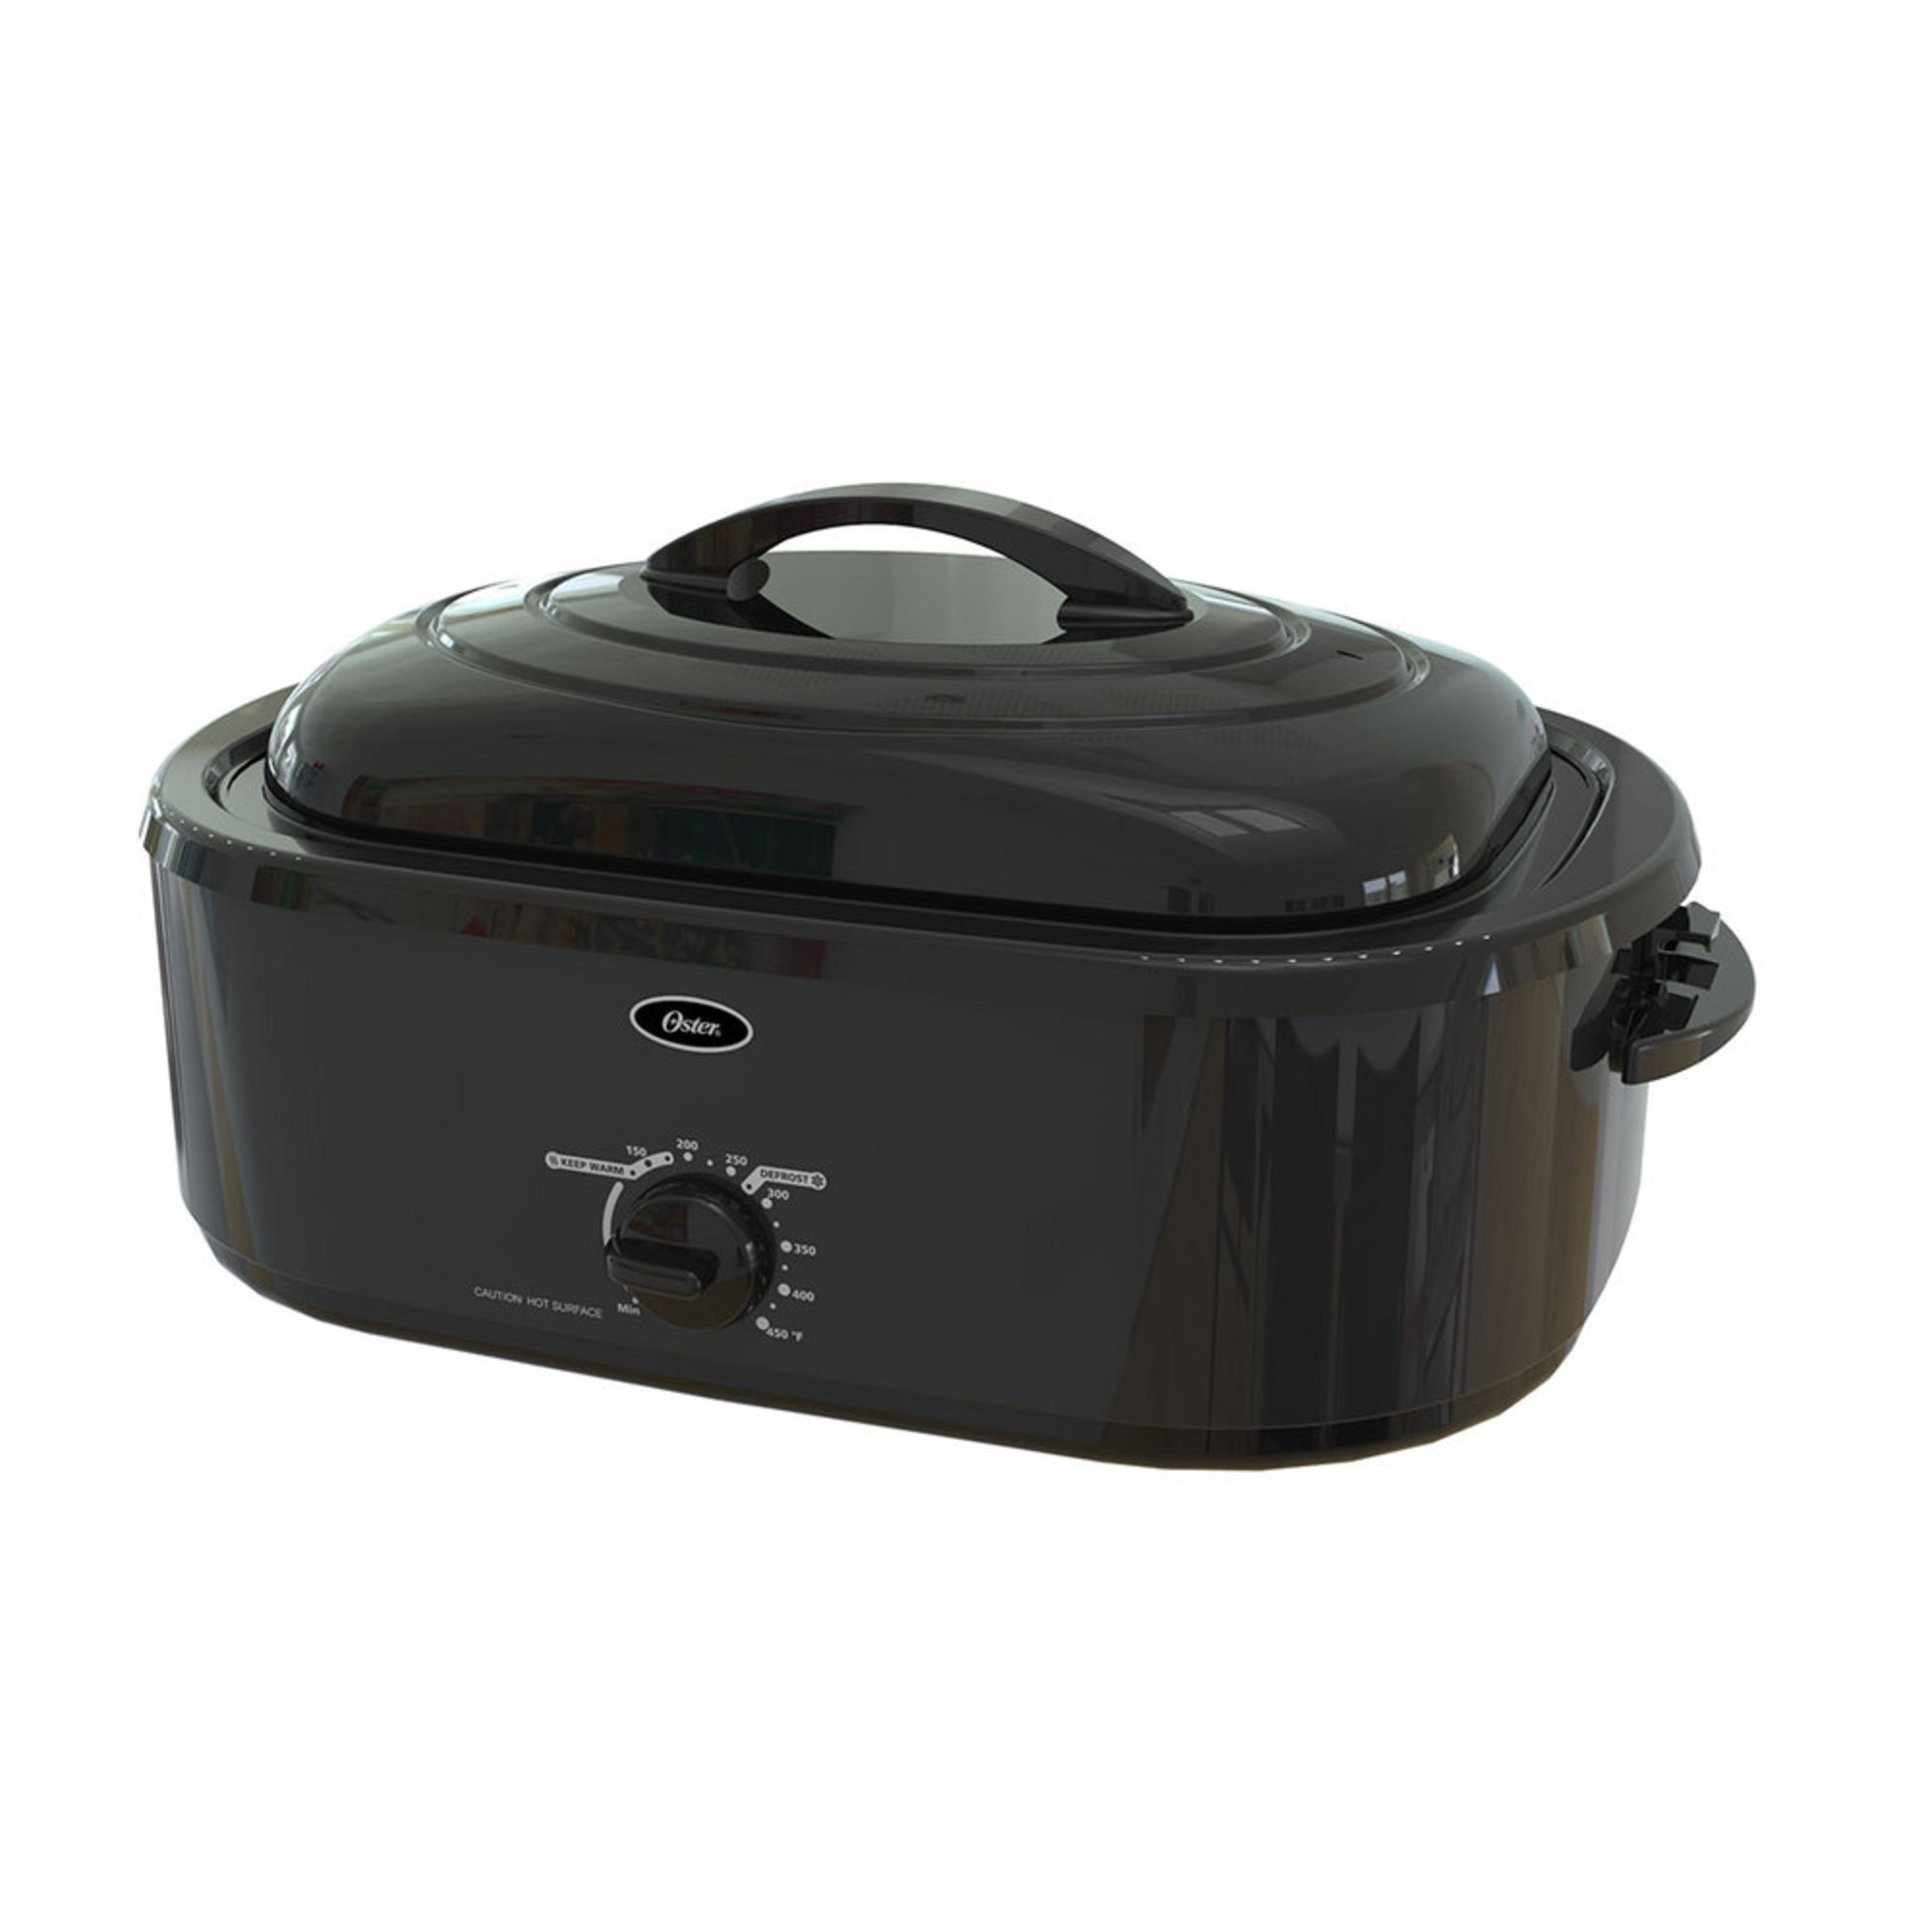 Oster Smoker Roaster Oven 16 Quart At Oster Com: Oster 16-quart Roaster Oven With Self-basting Lid